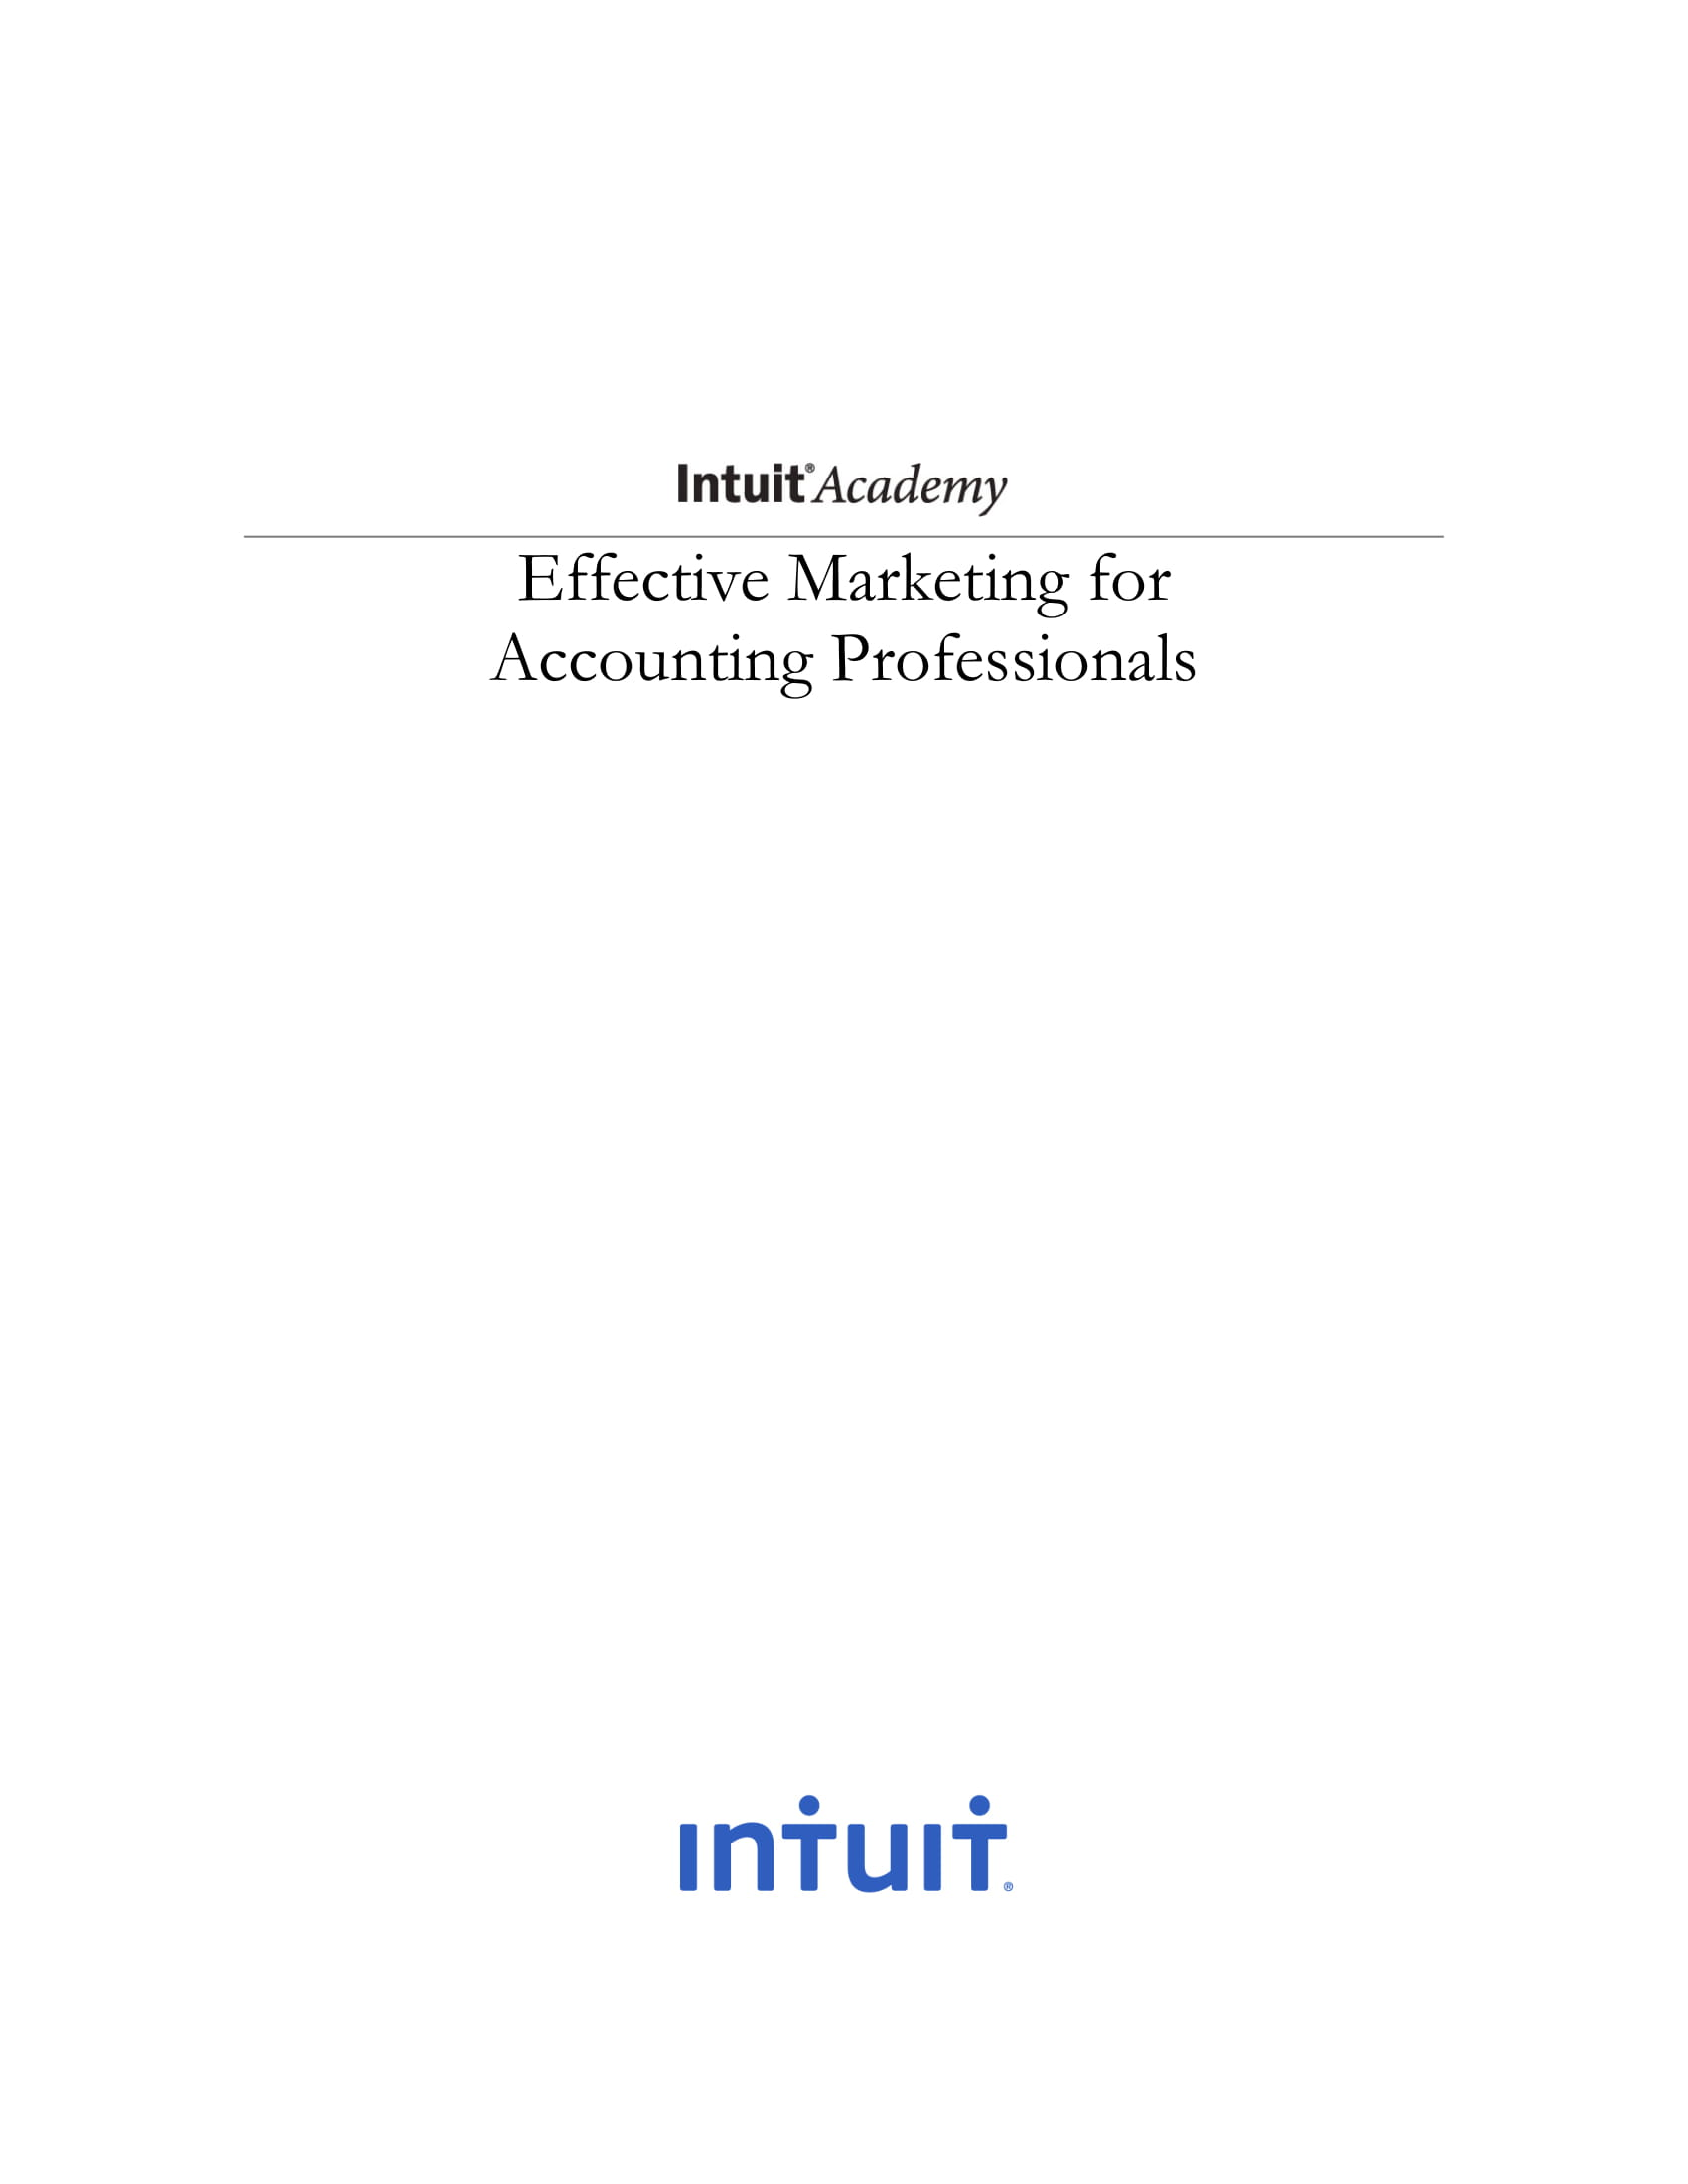 operative accounting firm marketing plan example